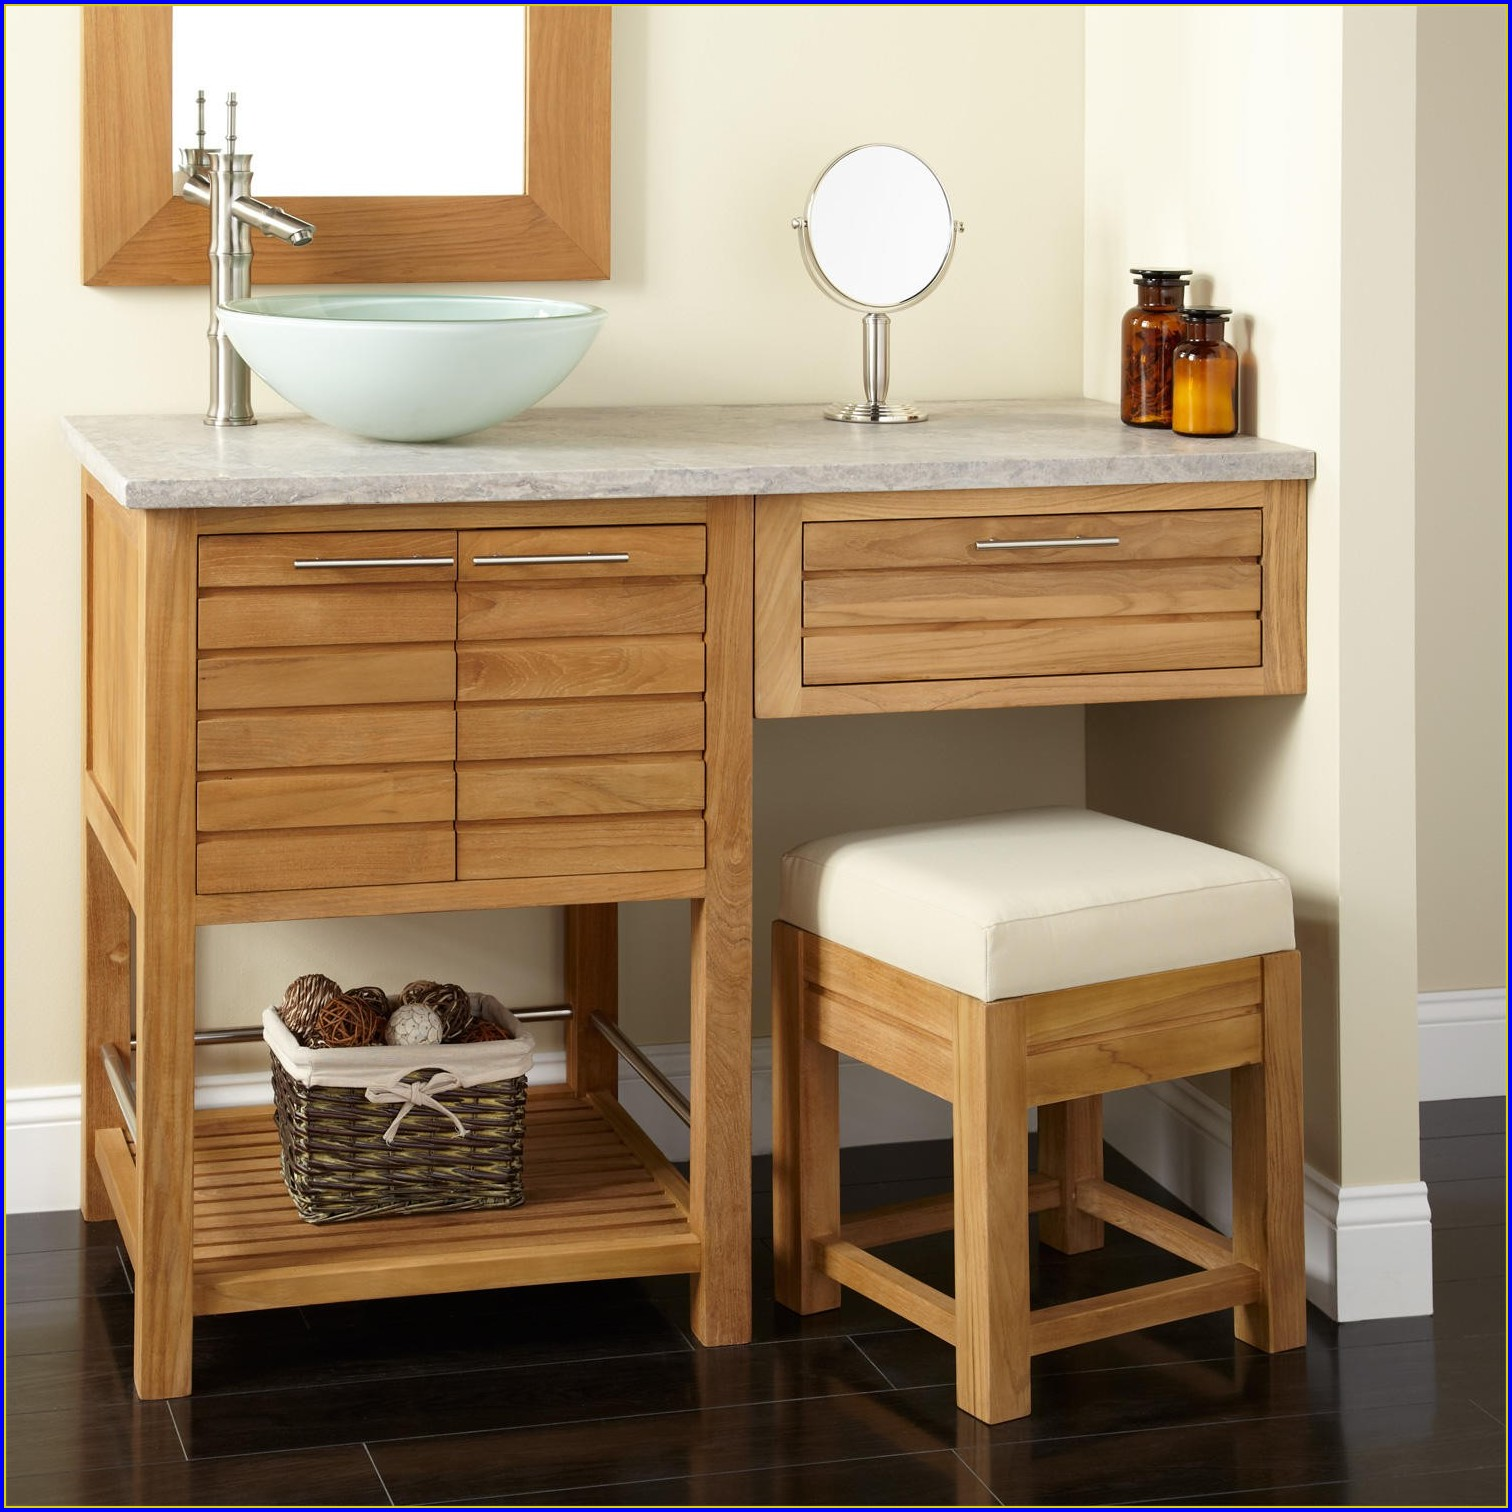 Bathroom Cabinets With Makeup Area